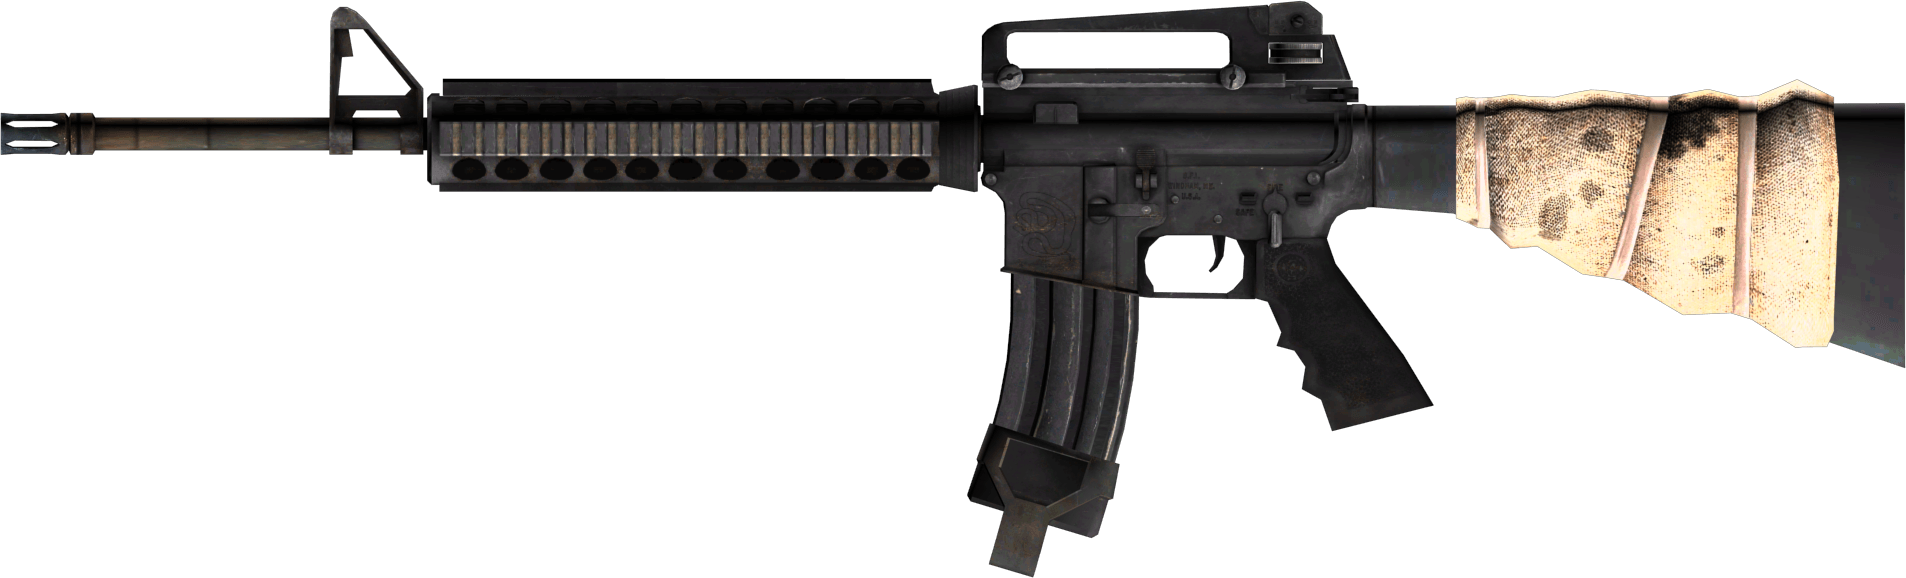 M16 Usa Assault Rifle Png PNG Image